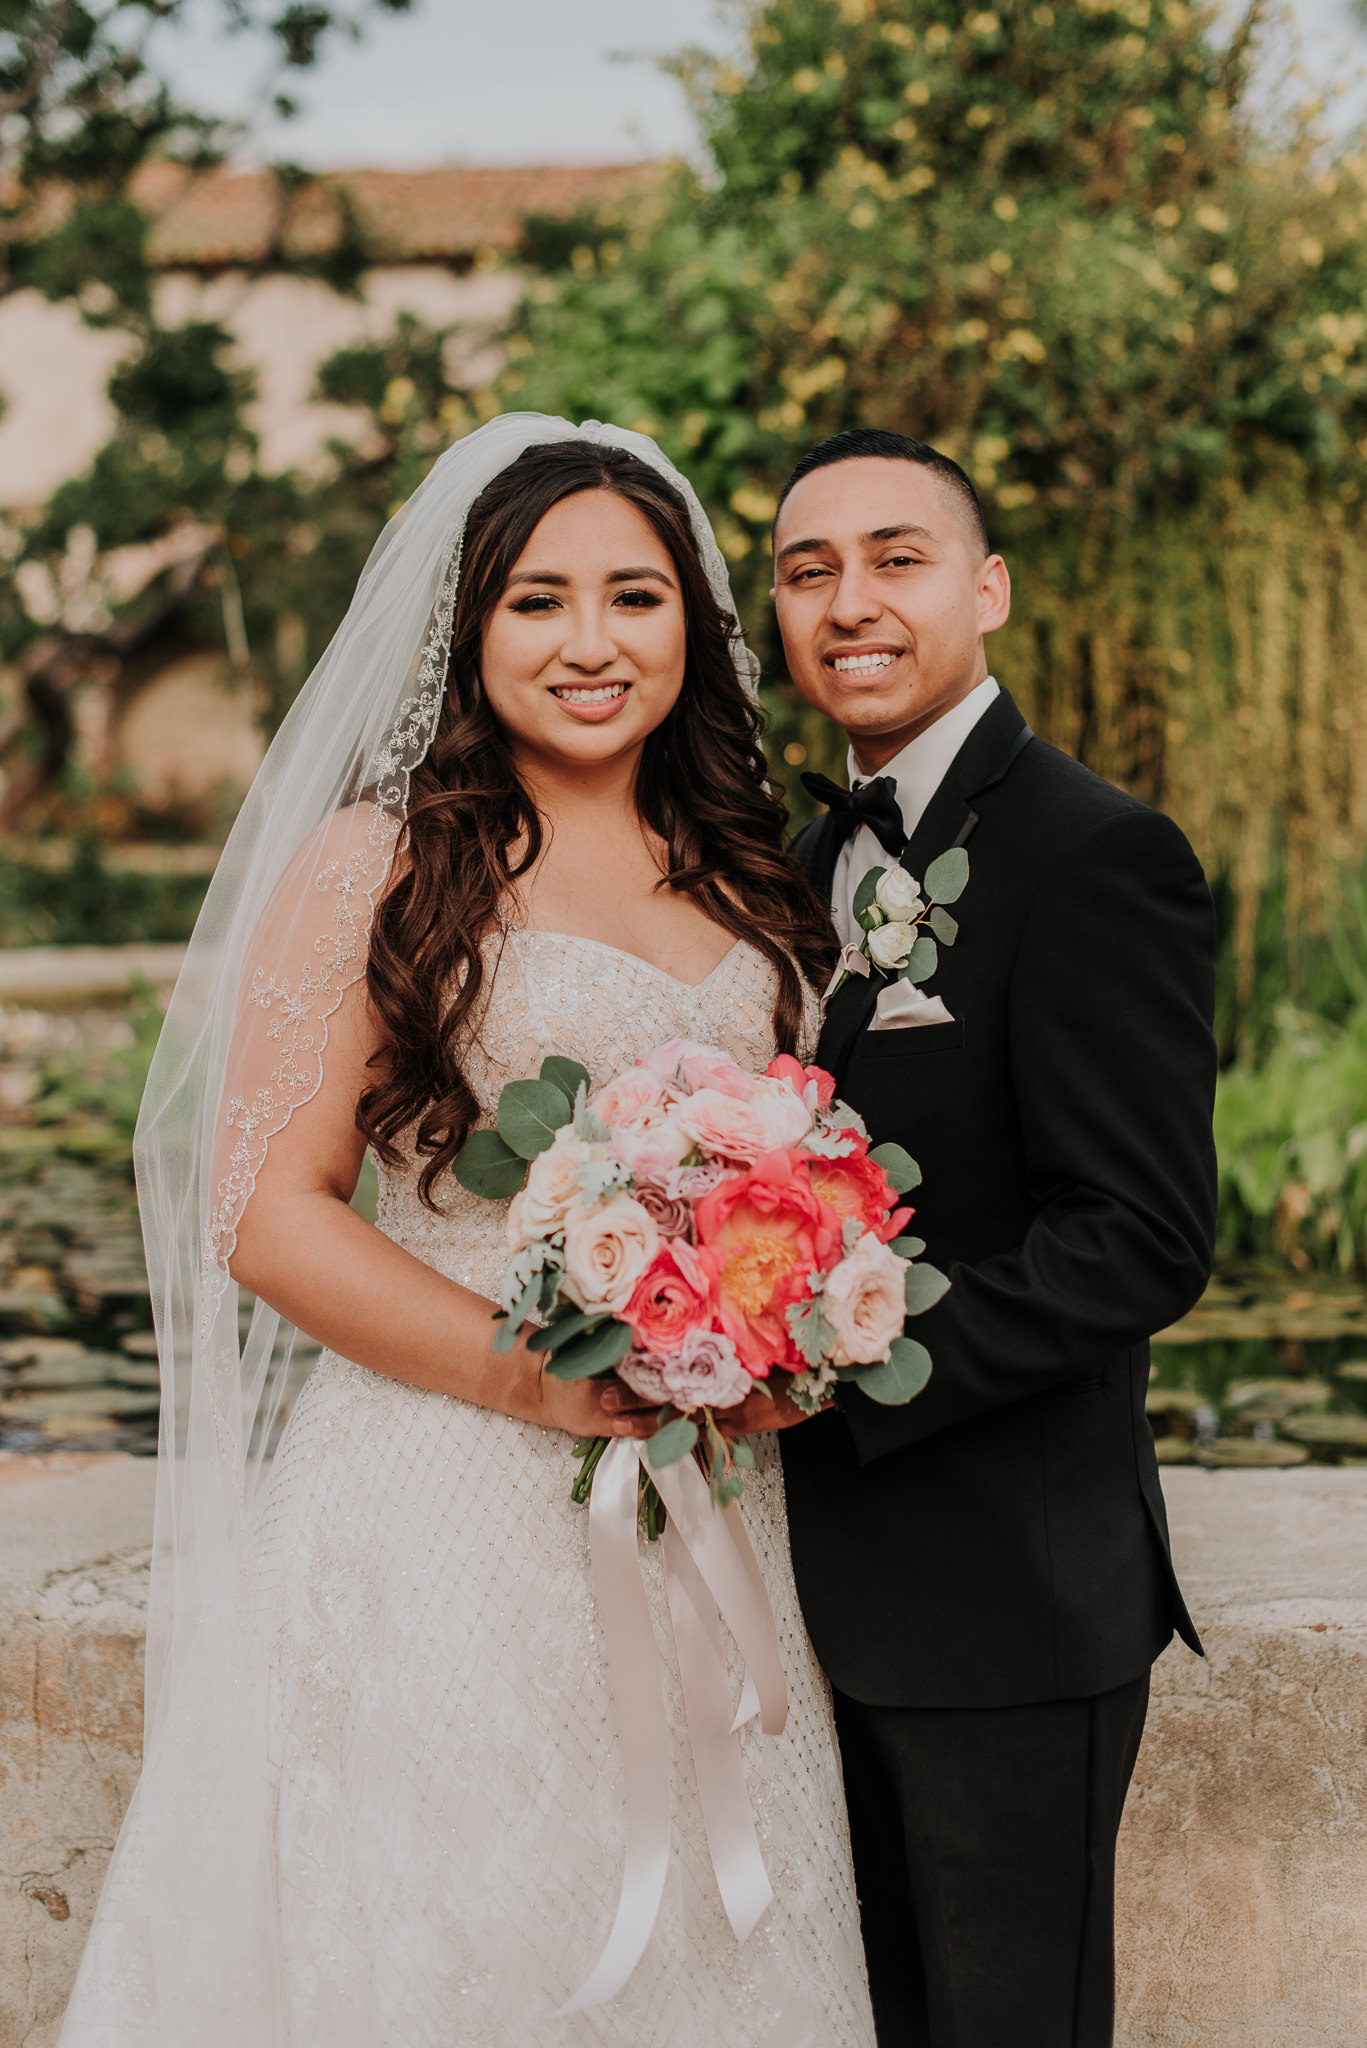 2019-04-05_Brittany_and_Nick_-_Married_-_San_Juan_Capistrano-95.jpg